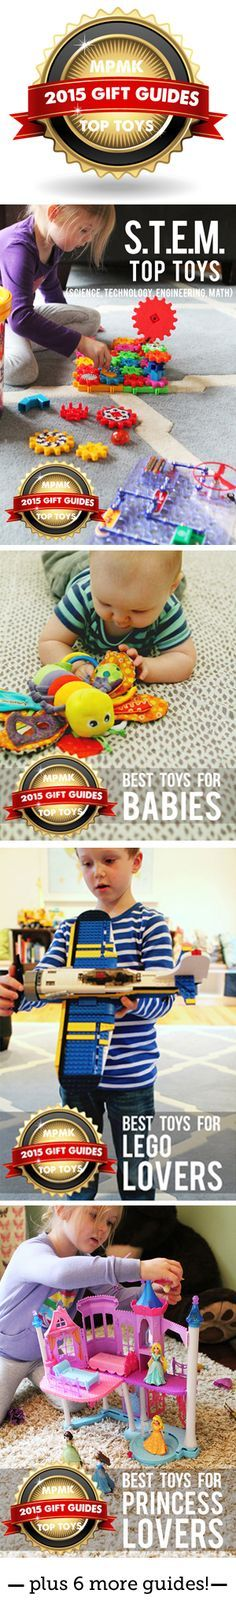 MPMK Toy Gift Guides- Best gift guides out there for kids... Use them every year to find great toys that will keep the kids engaged again and again!: